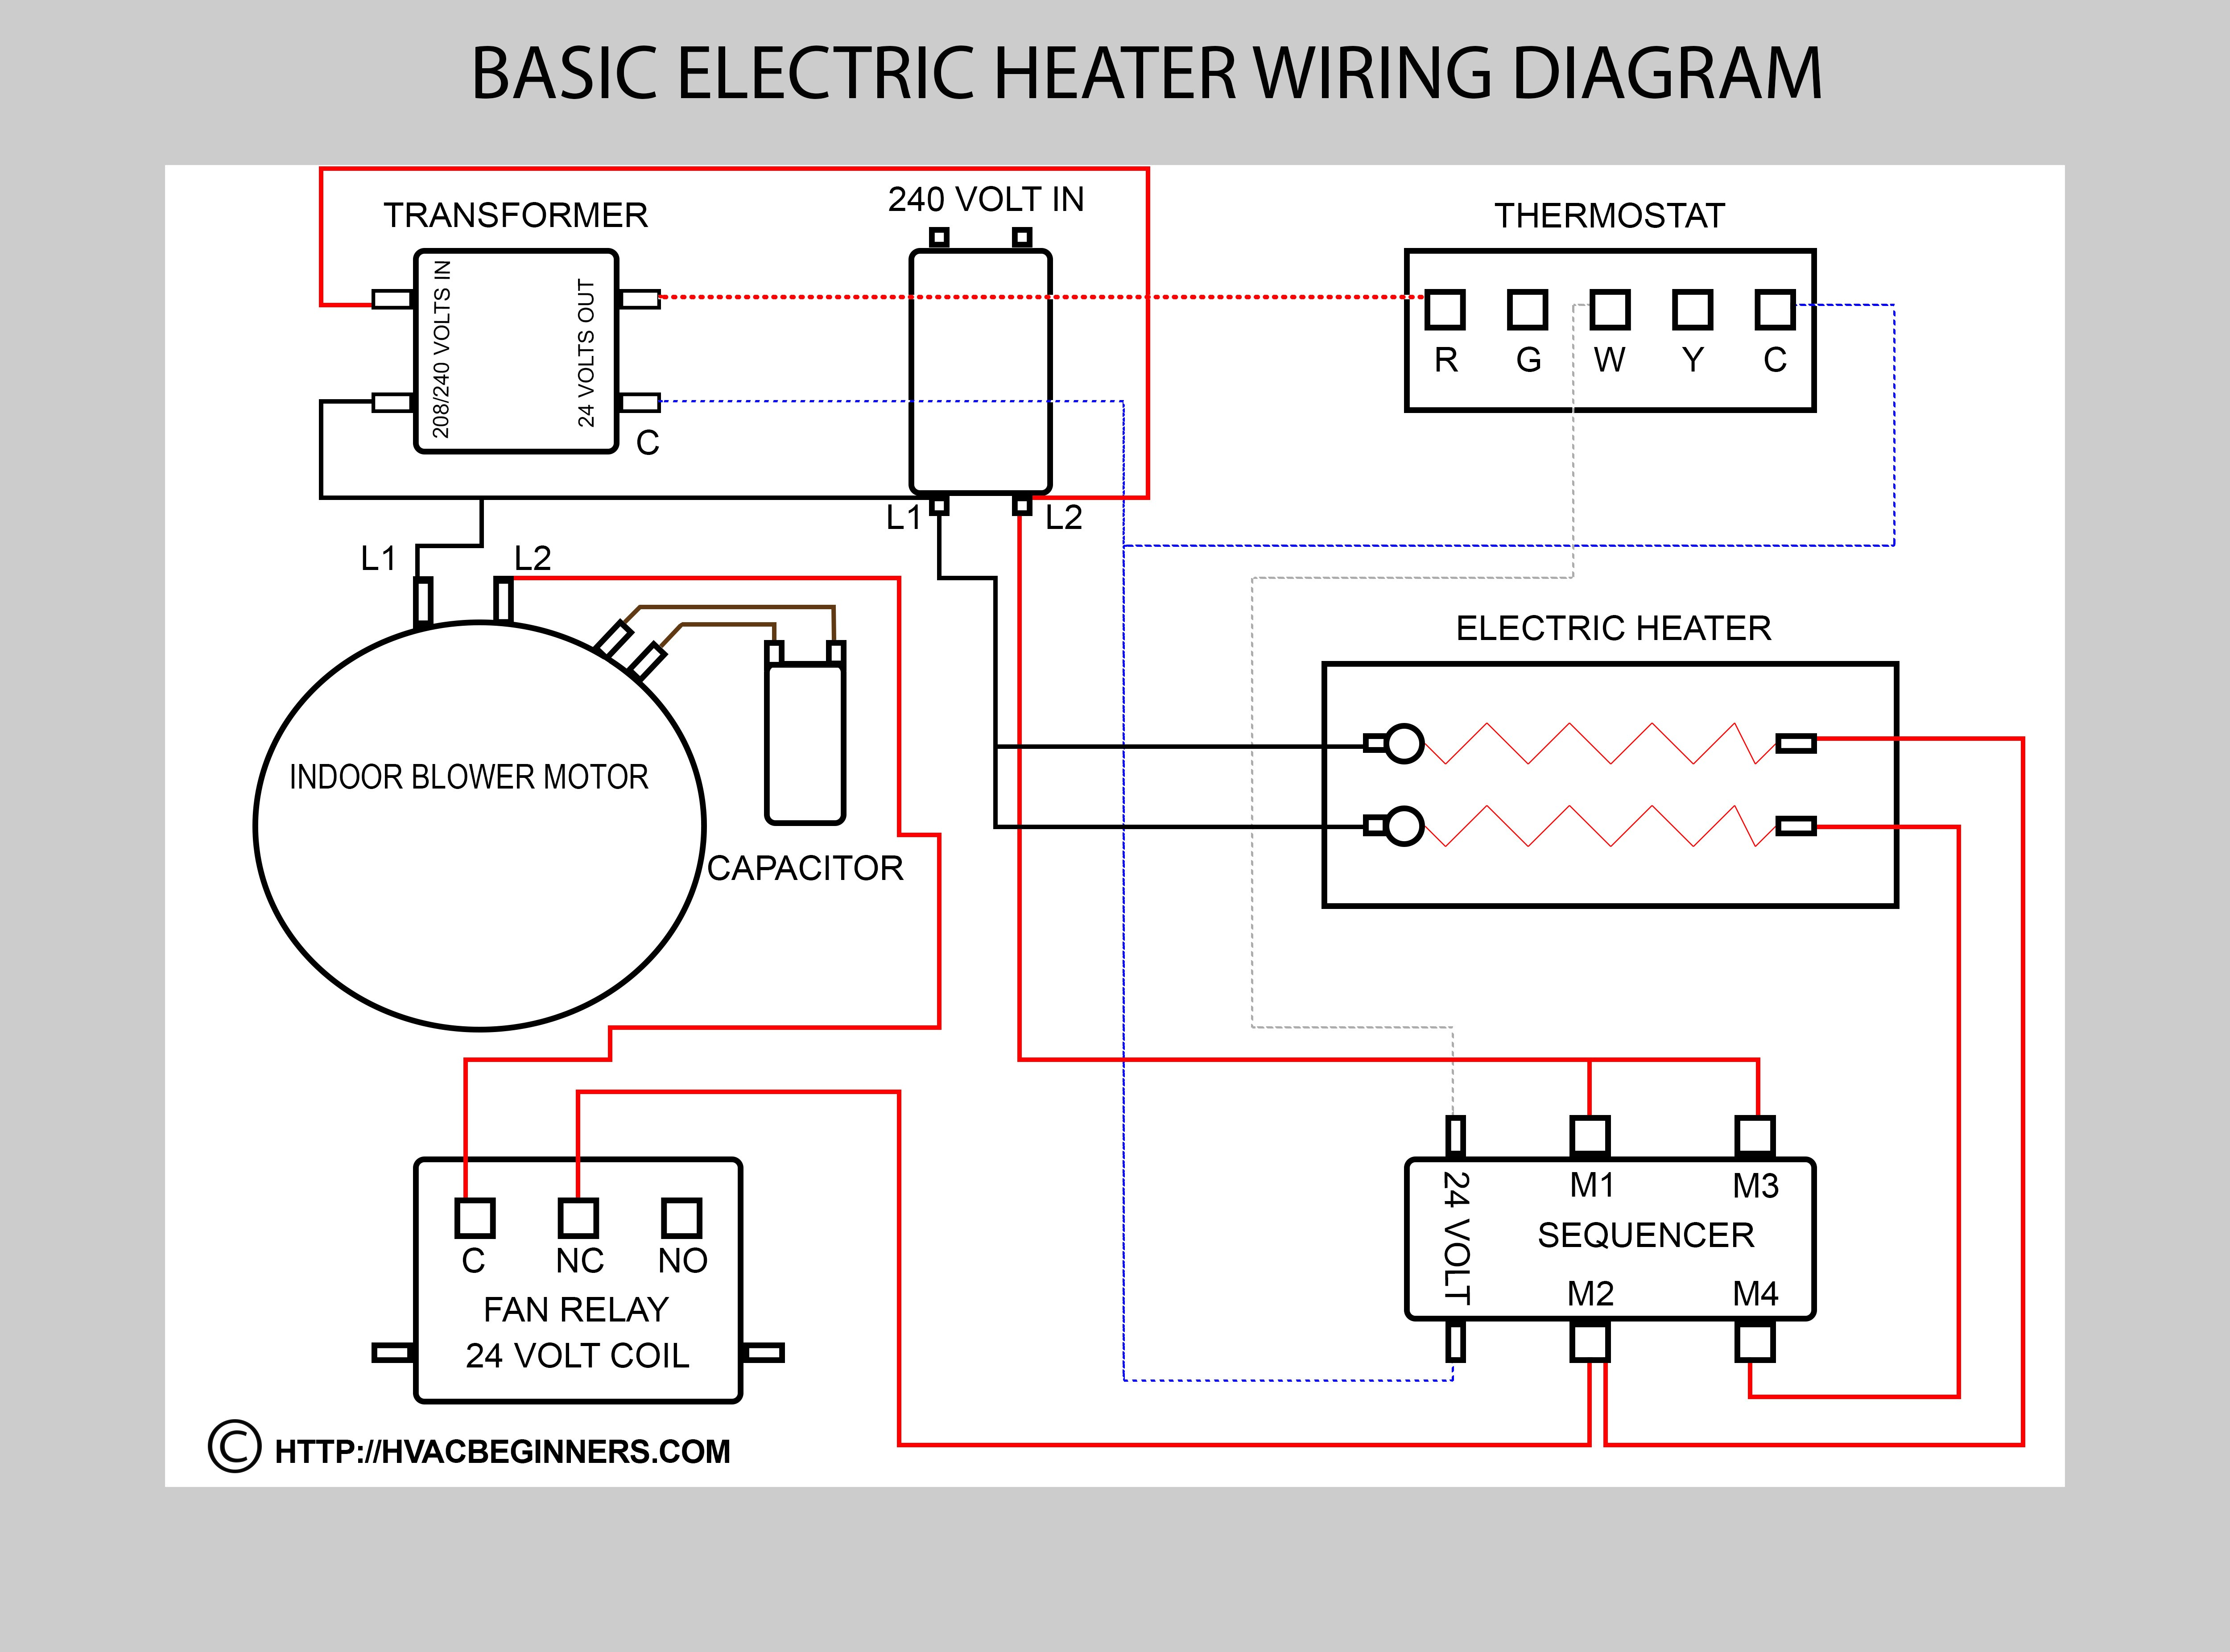 Oil Furnace Wiring Diagram Furnace Wiring Diagram Cinema Paradiso Of Oil Furnace Wiring Diagram